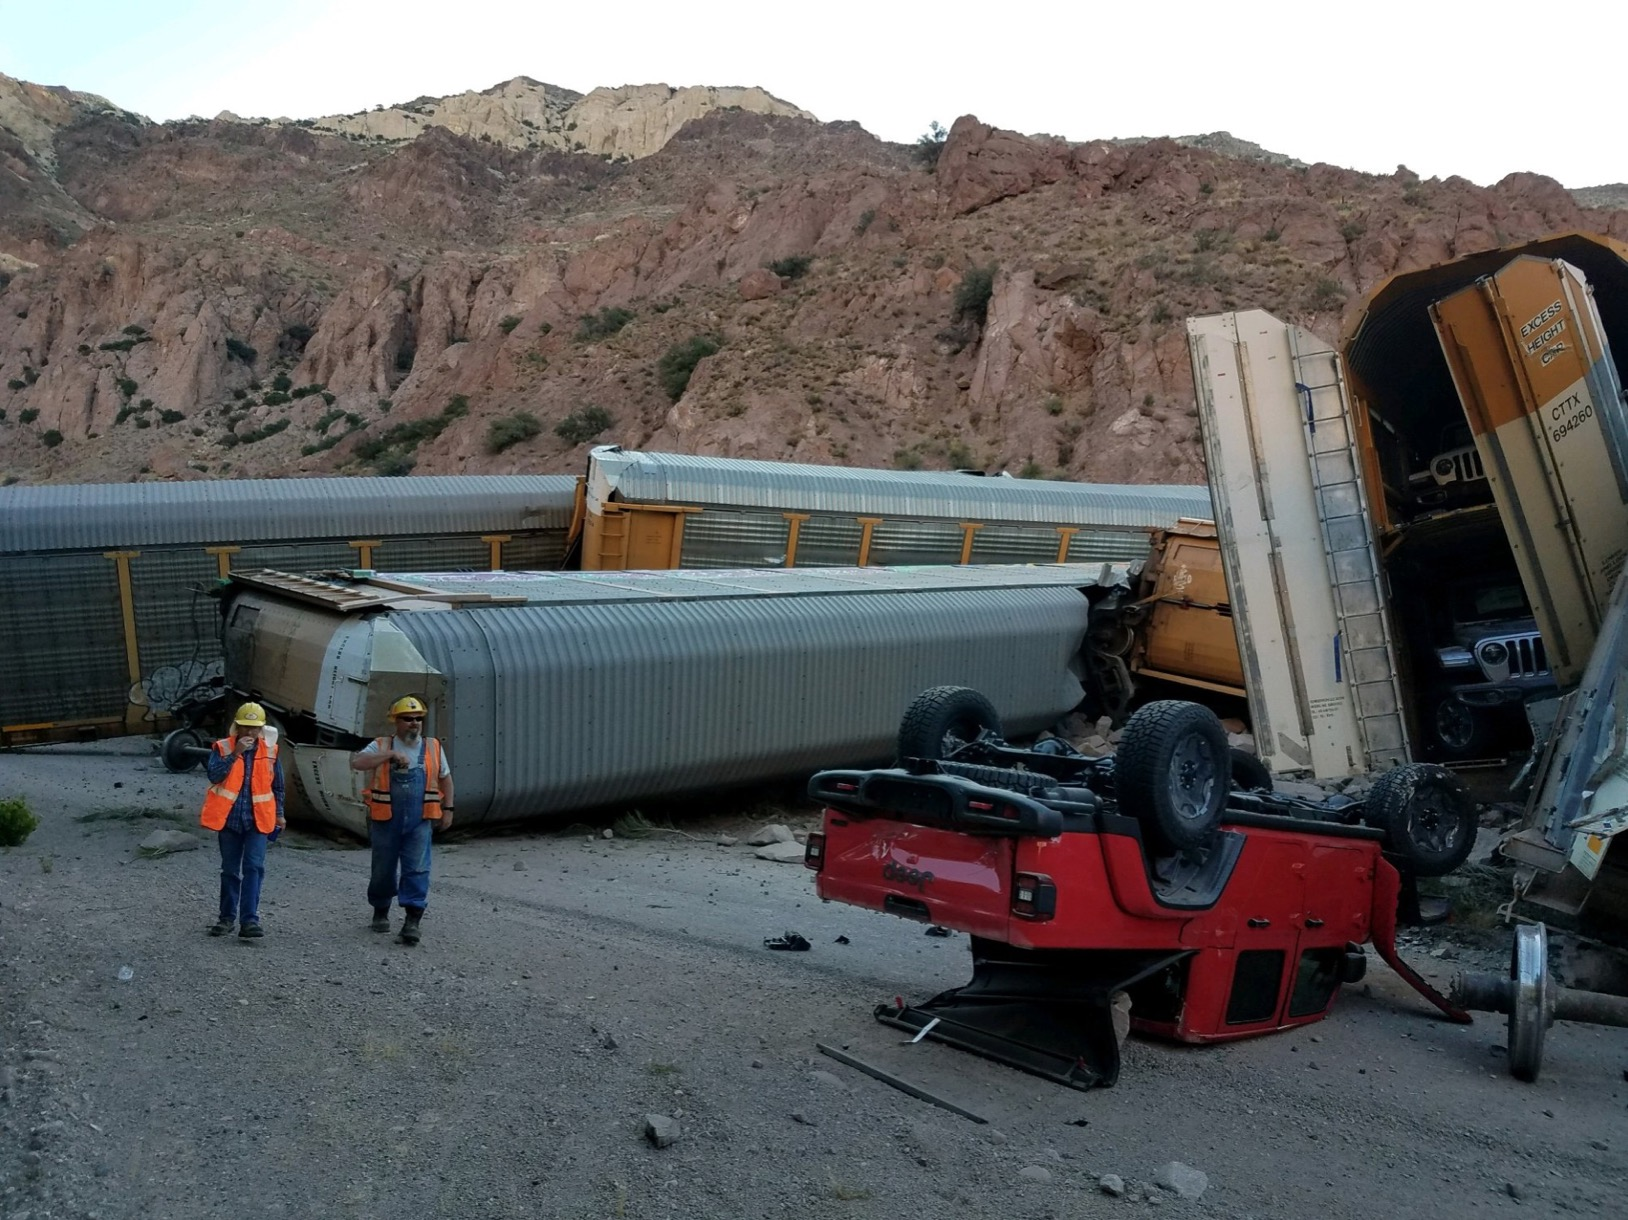 Hope nobody's order is delayed (train carrying new Jeeps derails